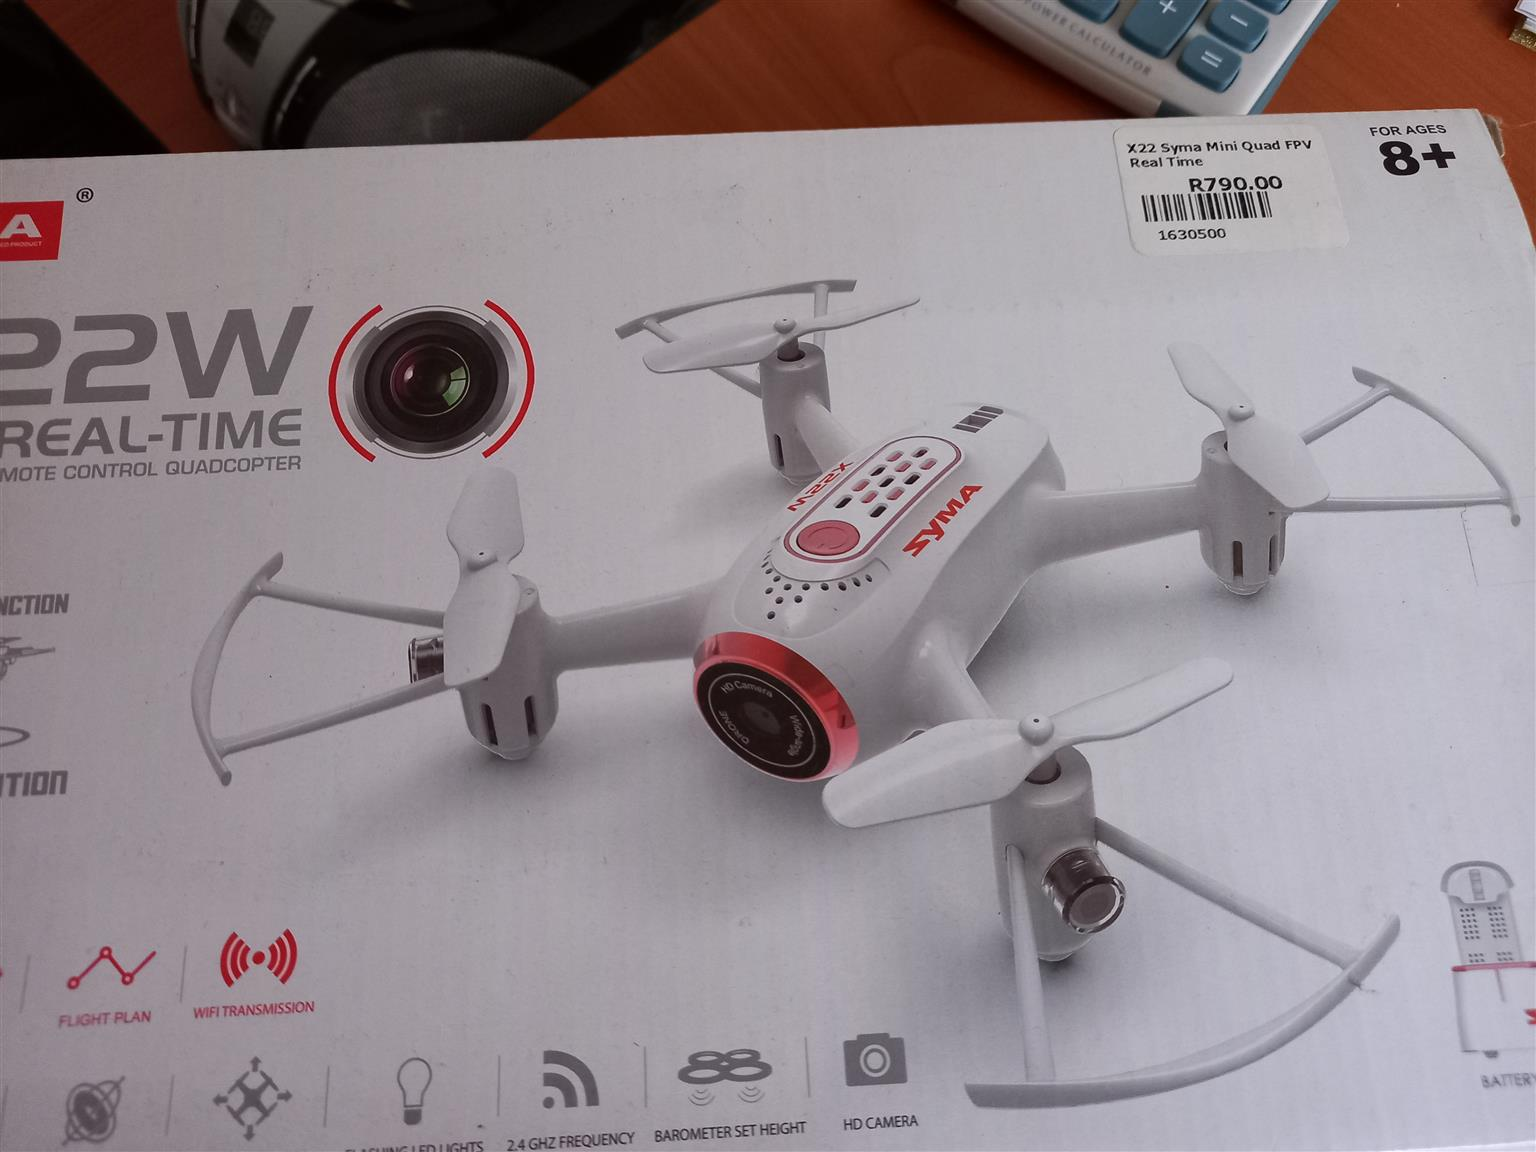 Drone For Sale...Good as new only used once or max 5 times